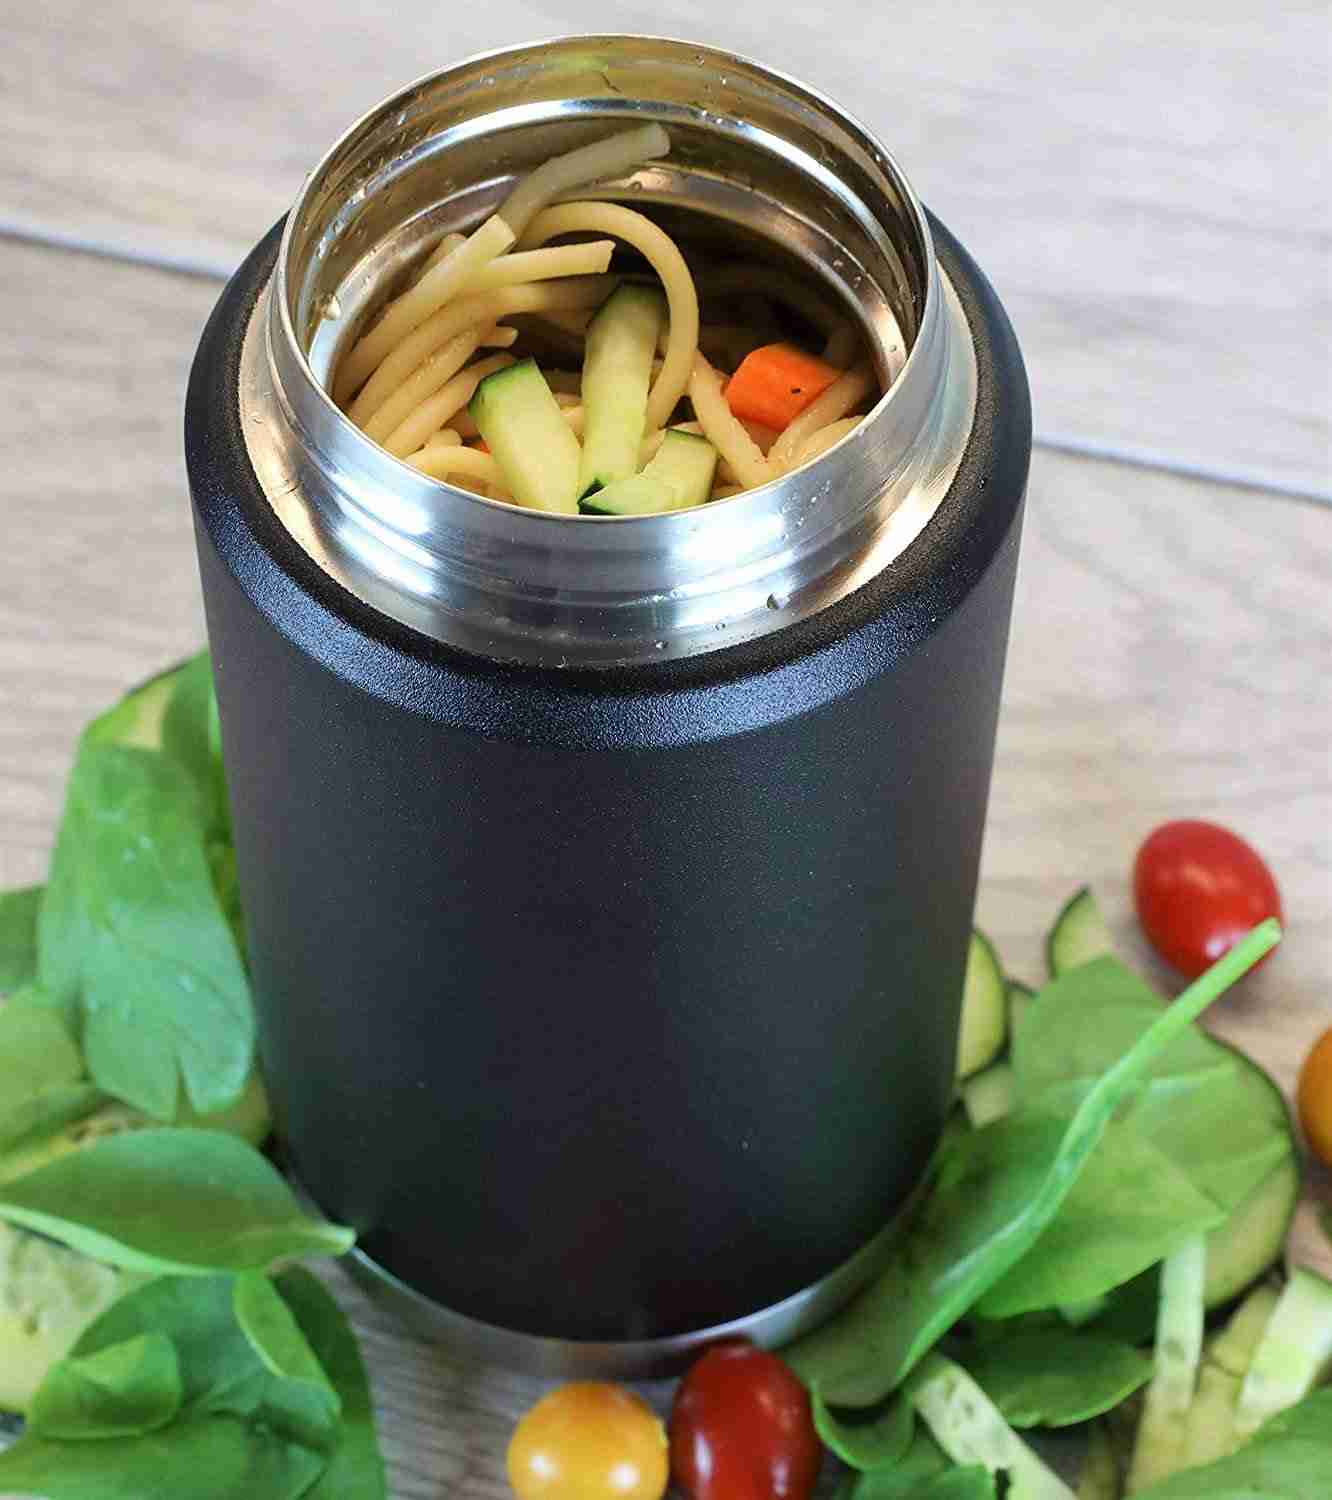 Do stainless steel lunch boxes keep food warm?